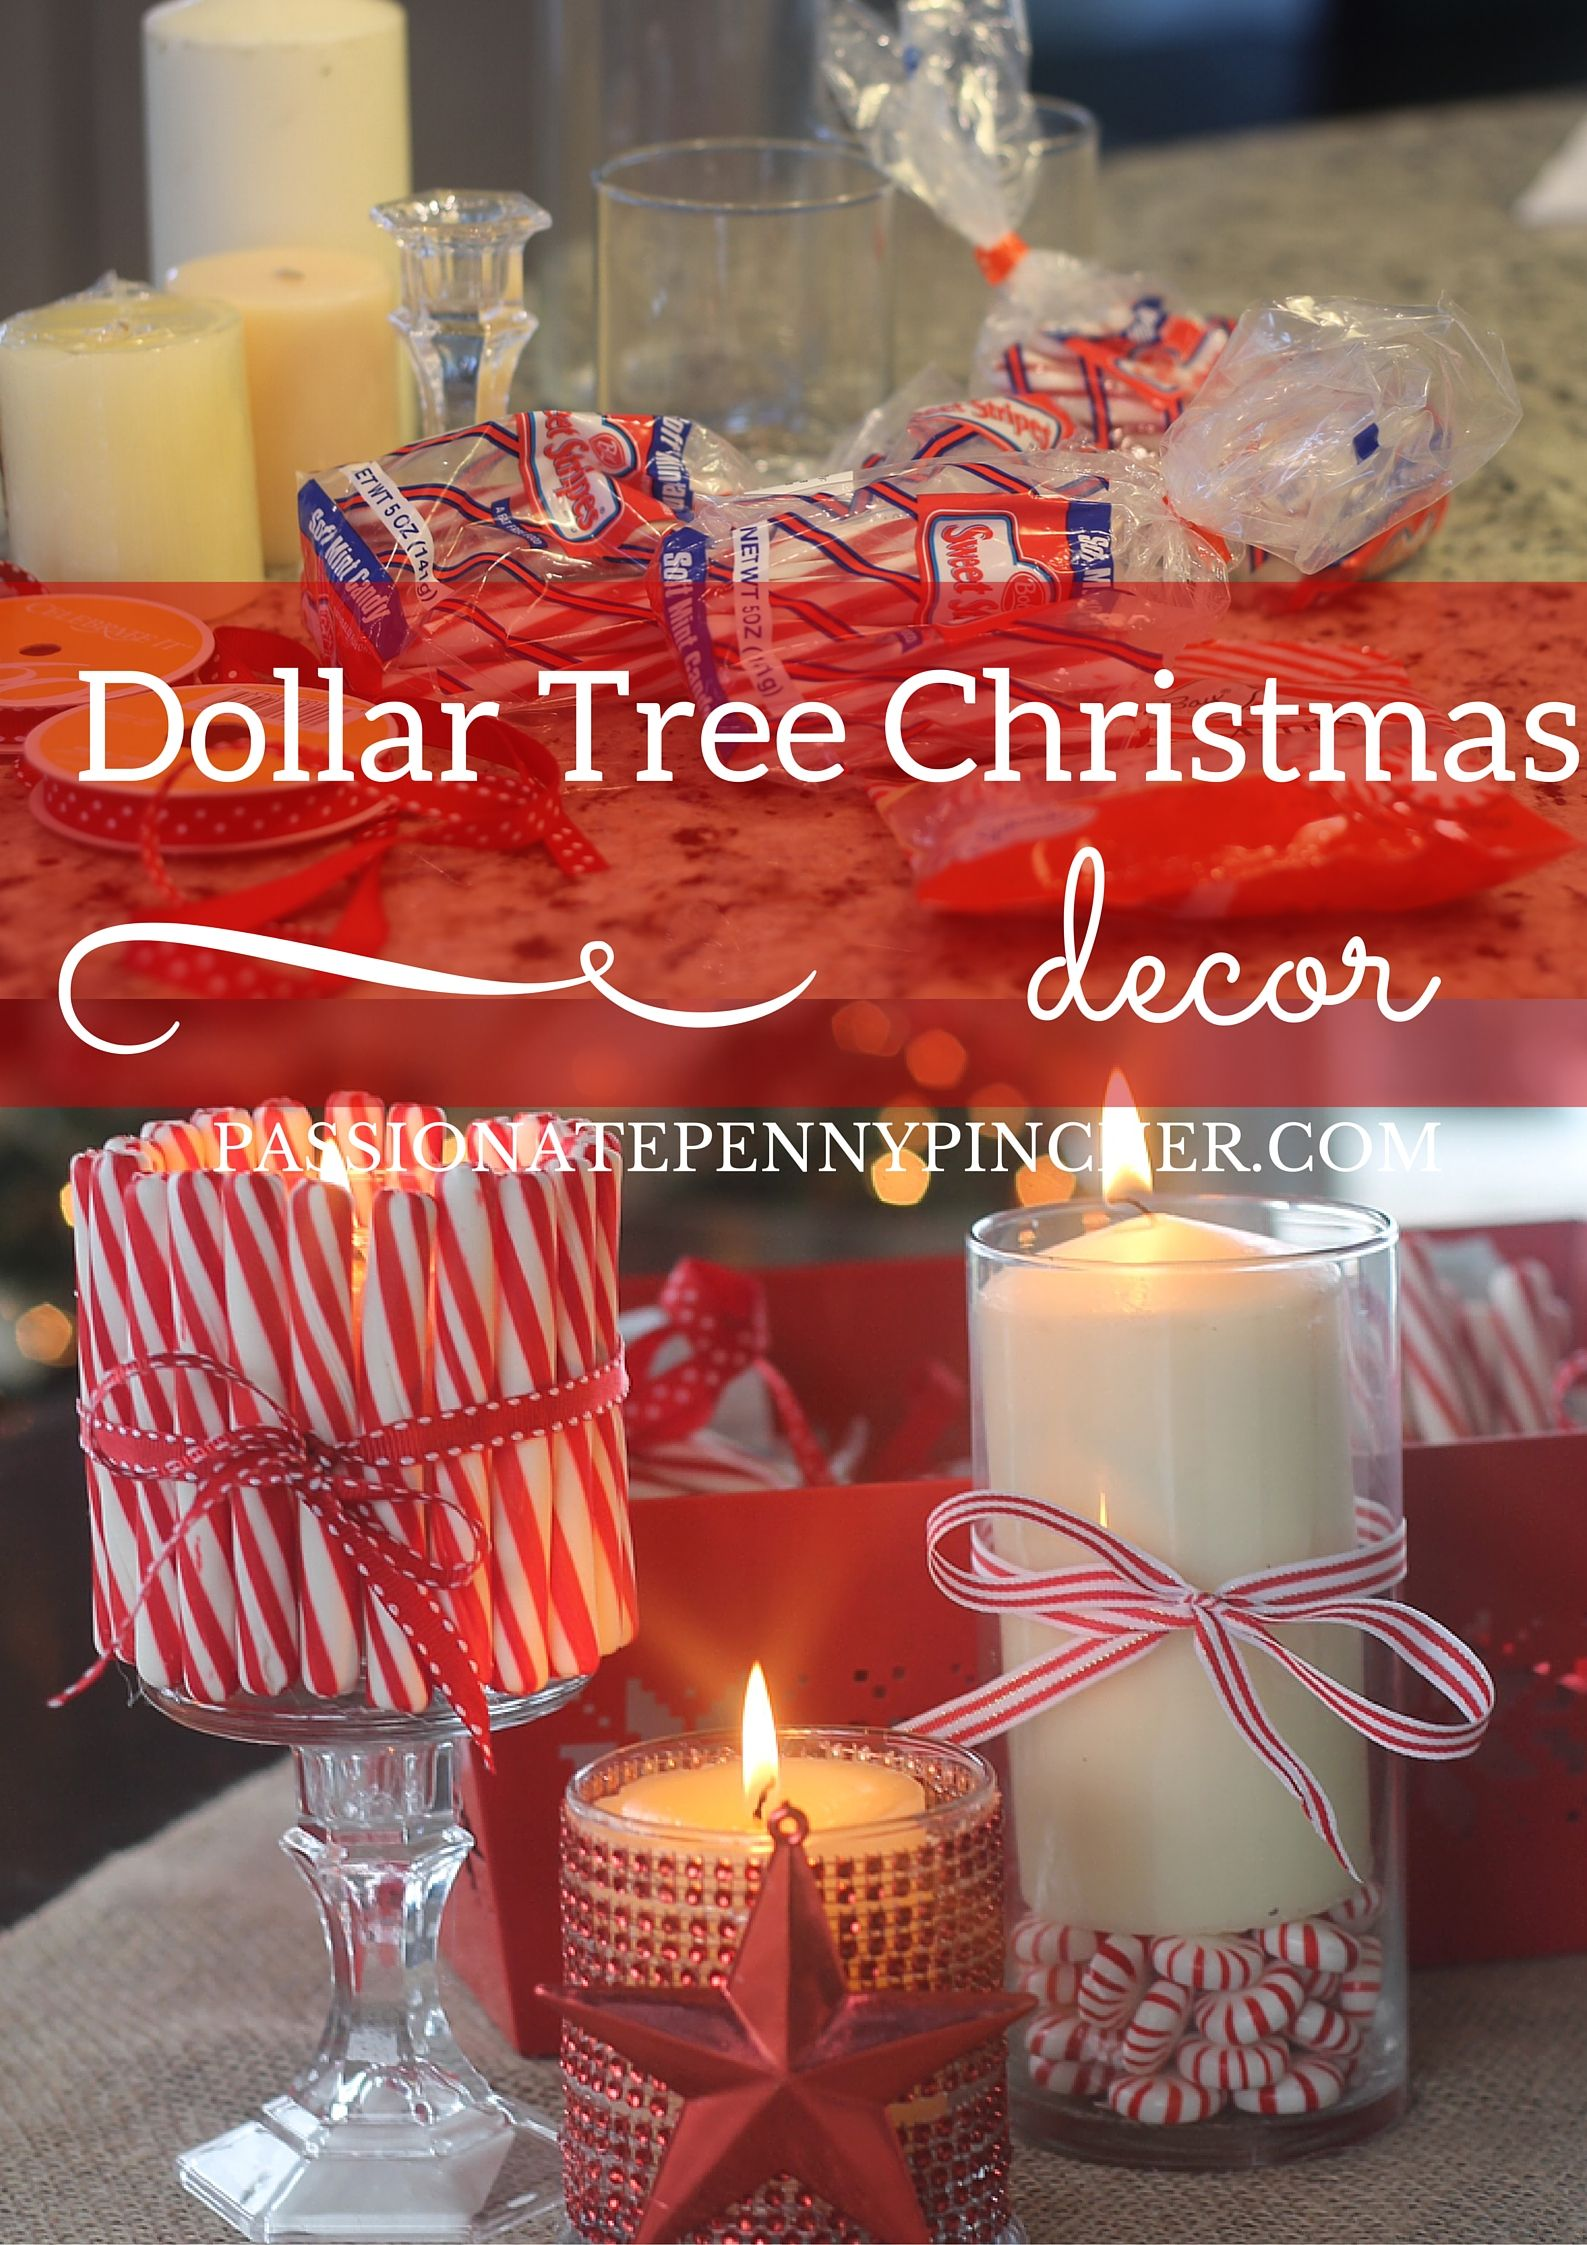 friday fluff up christmas decorating at the dollar tree passionate penny pincher is the 1 source printable online coupons